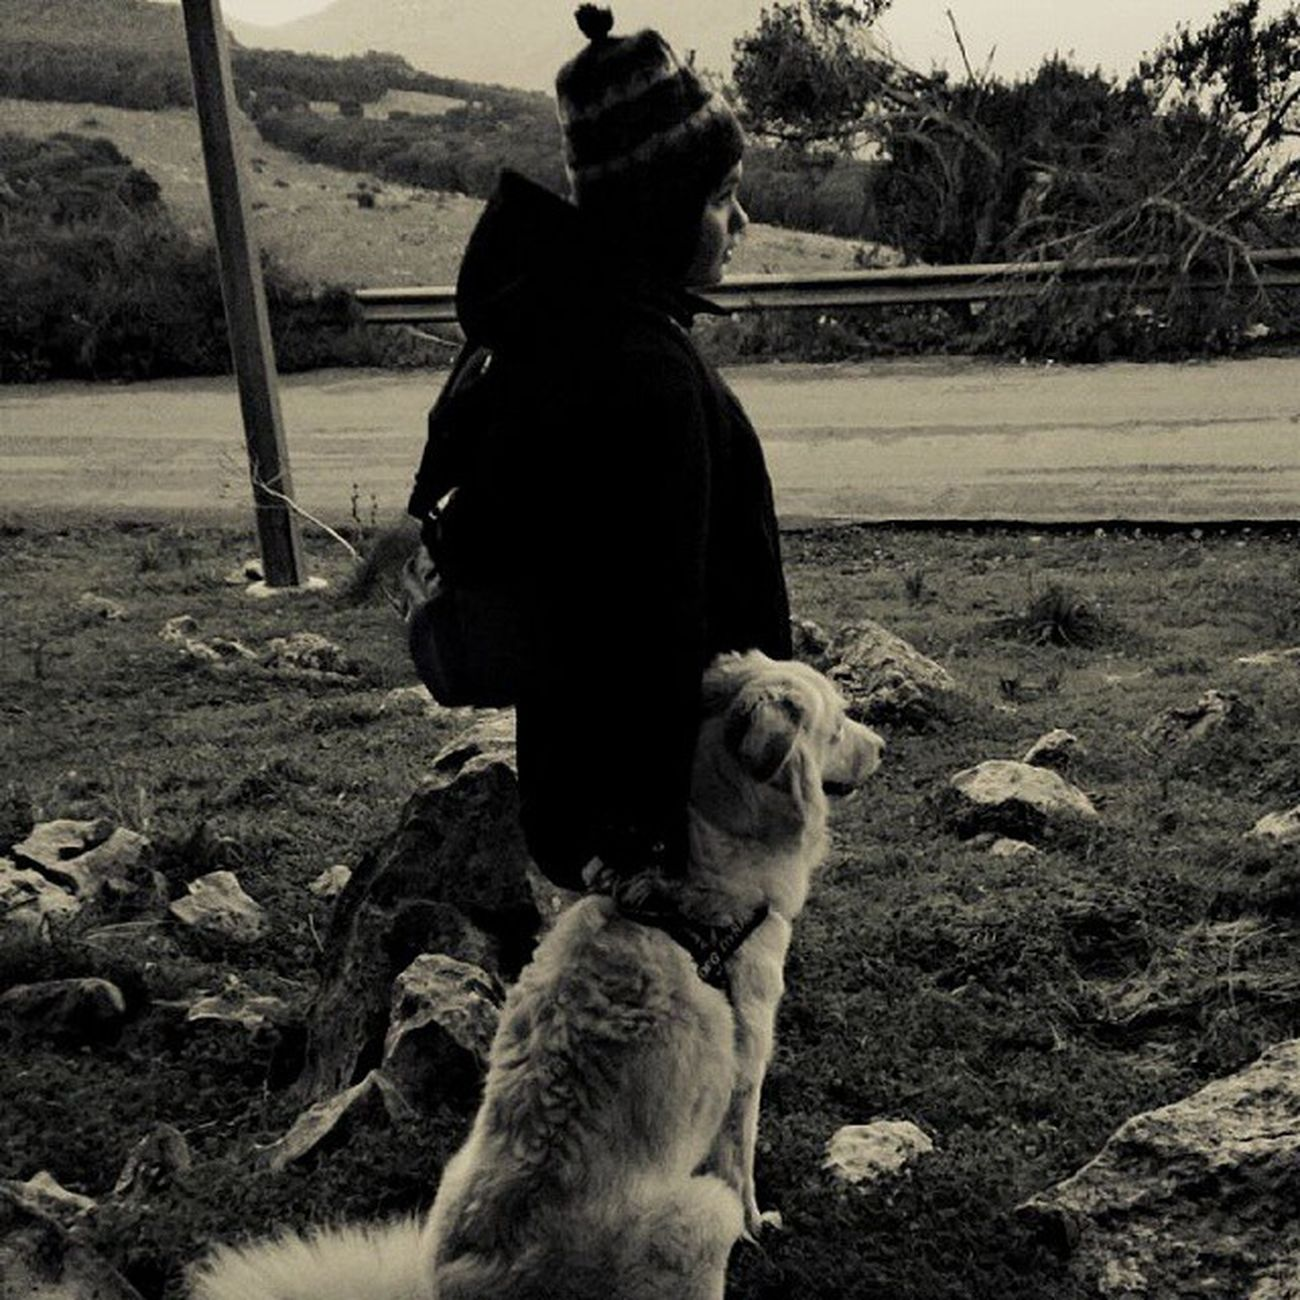 No doubt dogs are men's best friend Instagood Doglover Countryside Picoftheday Bestfriend Friend Freezingcold Blackandwhite Sicily Endofholidays